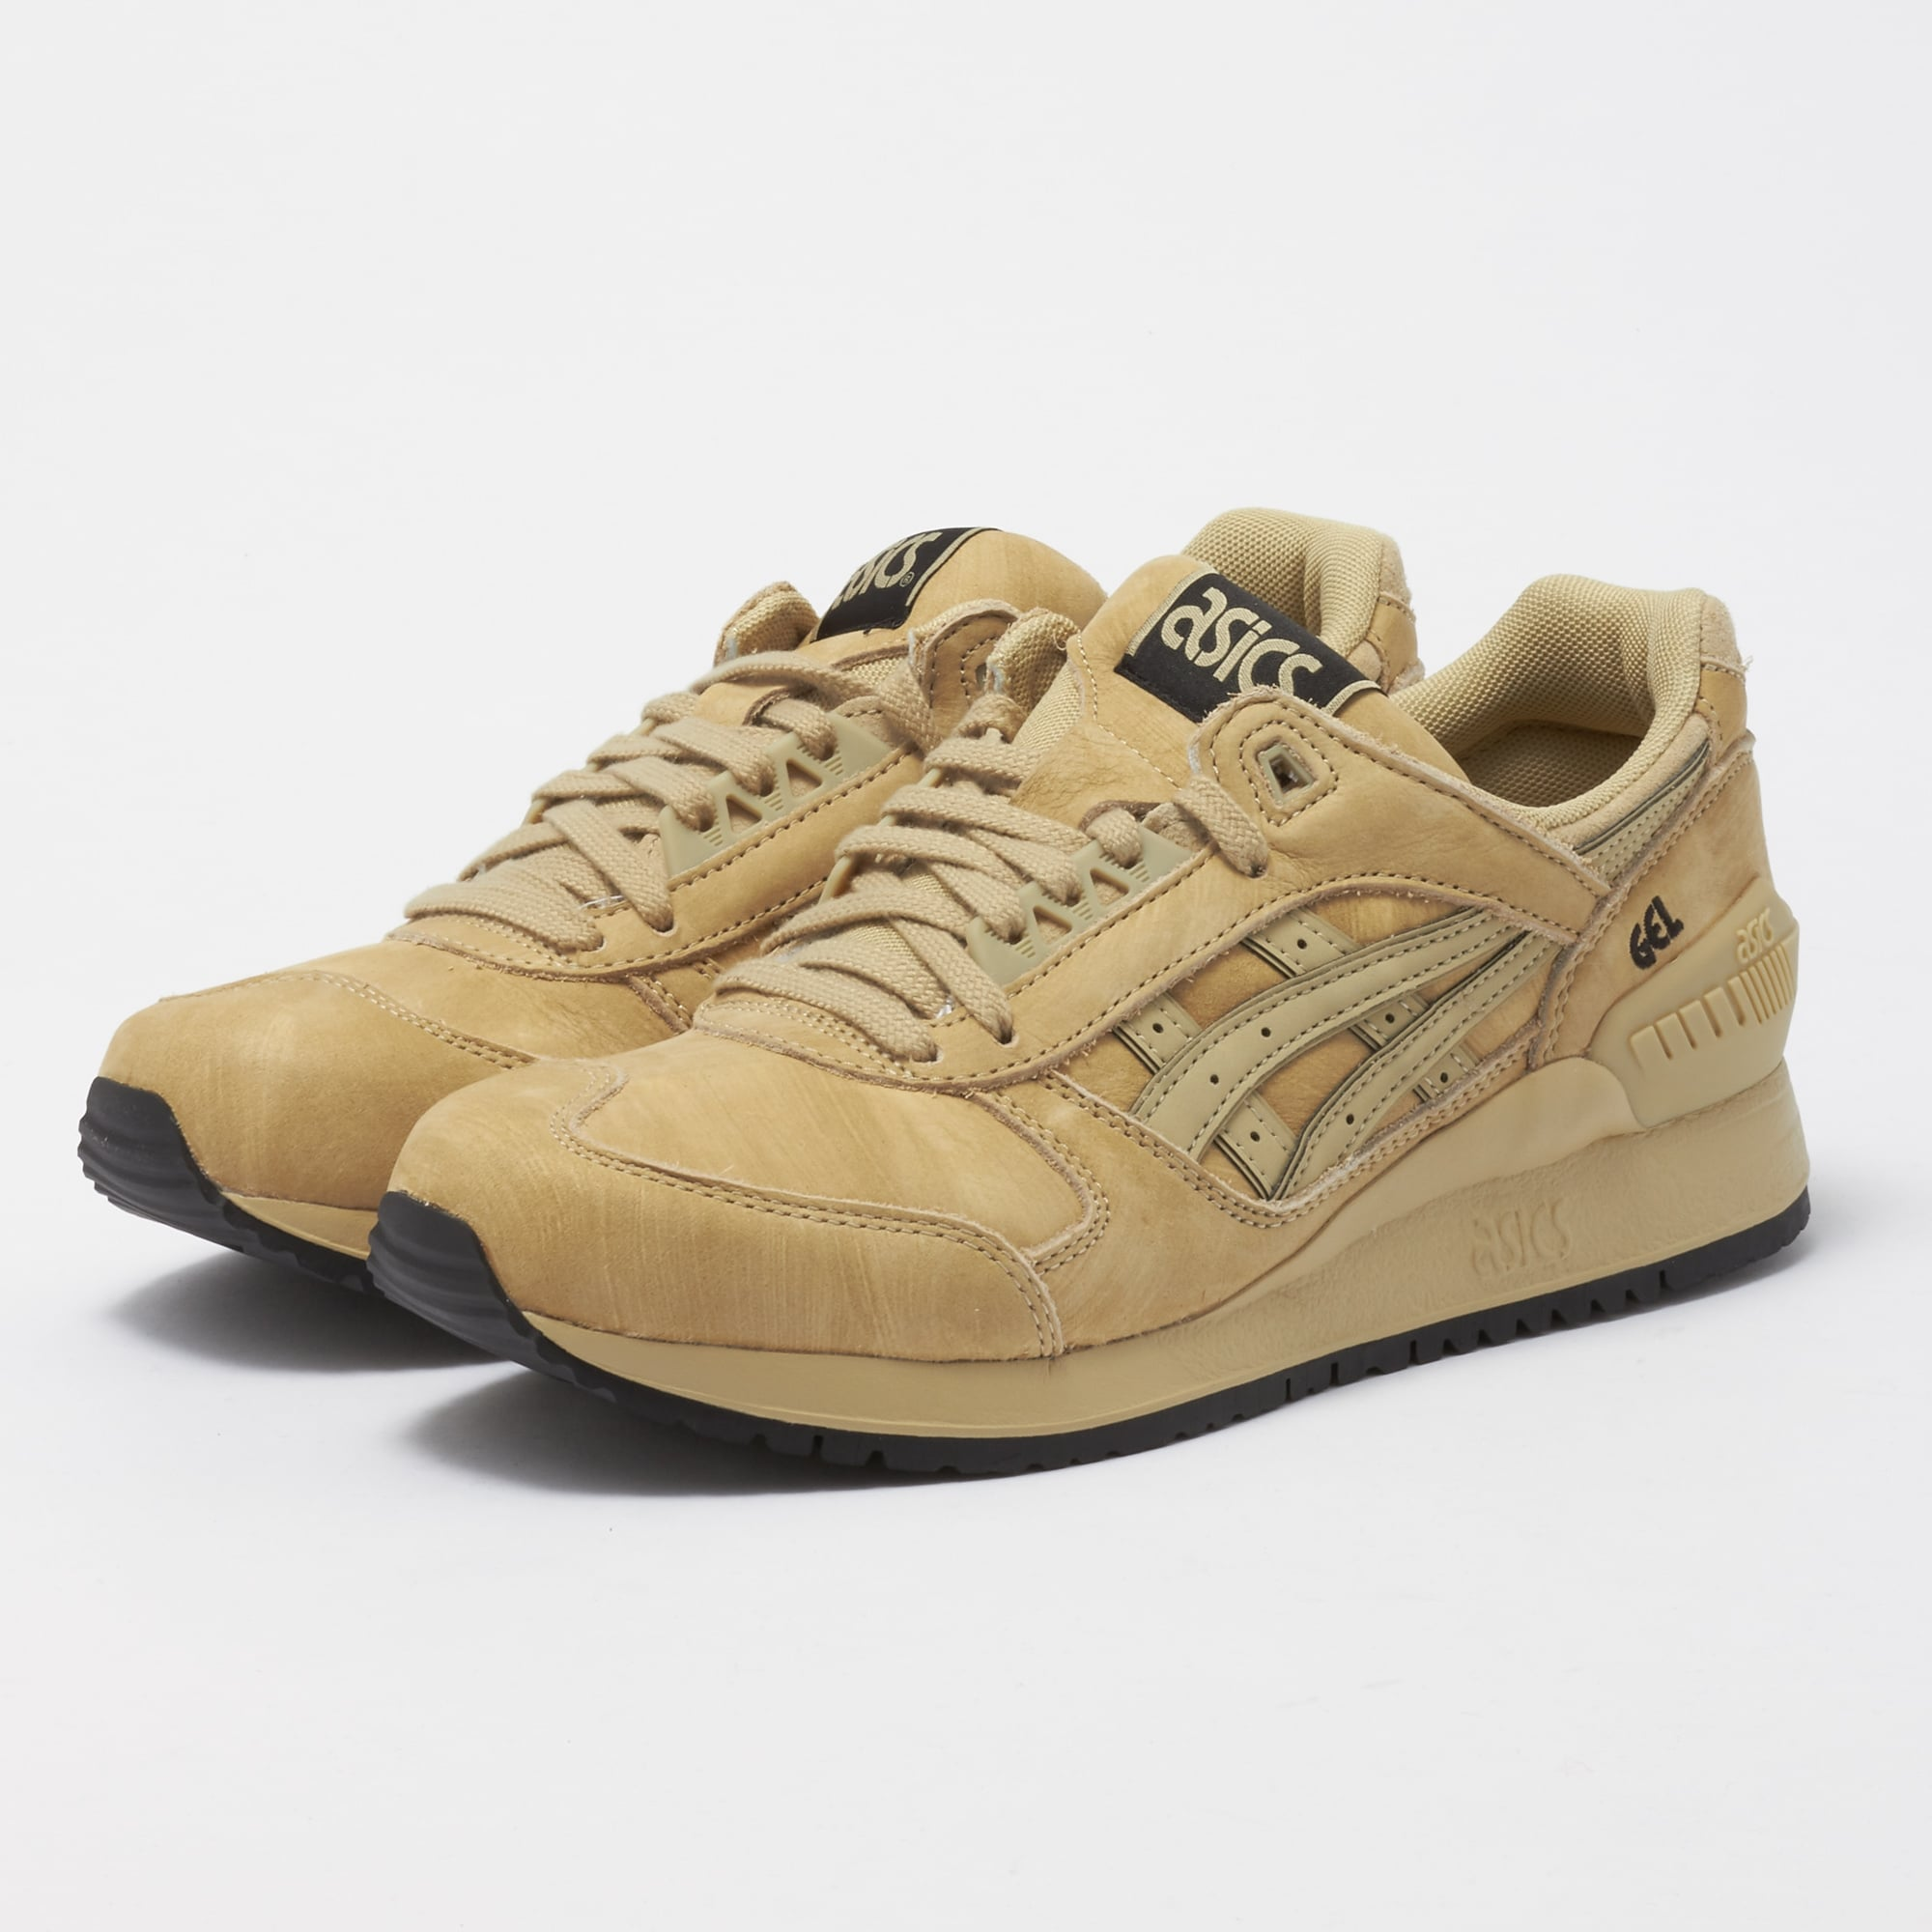 f76f7c88e2cc Asics Gel-Respector (Taos Taupe) at Dandy Fellow